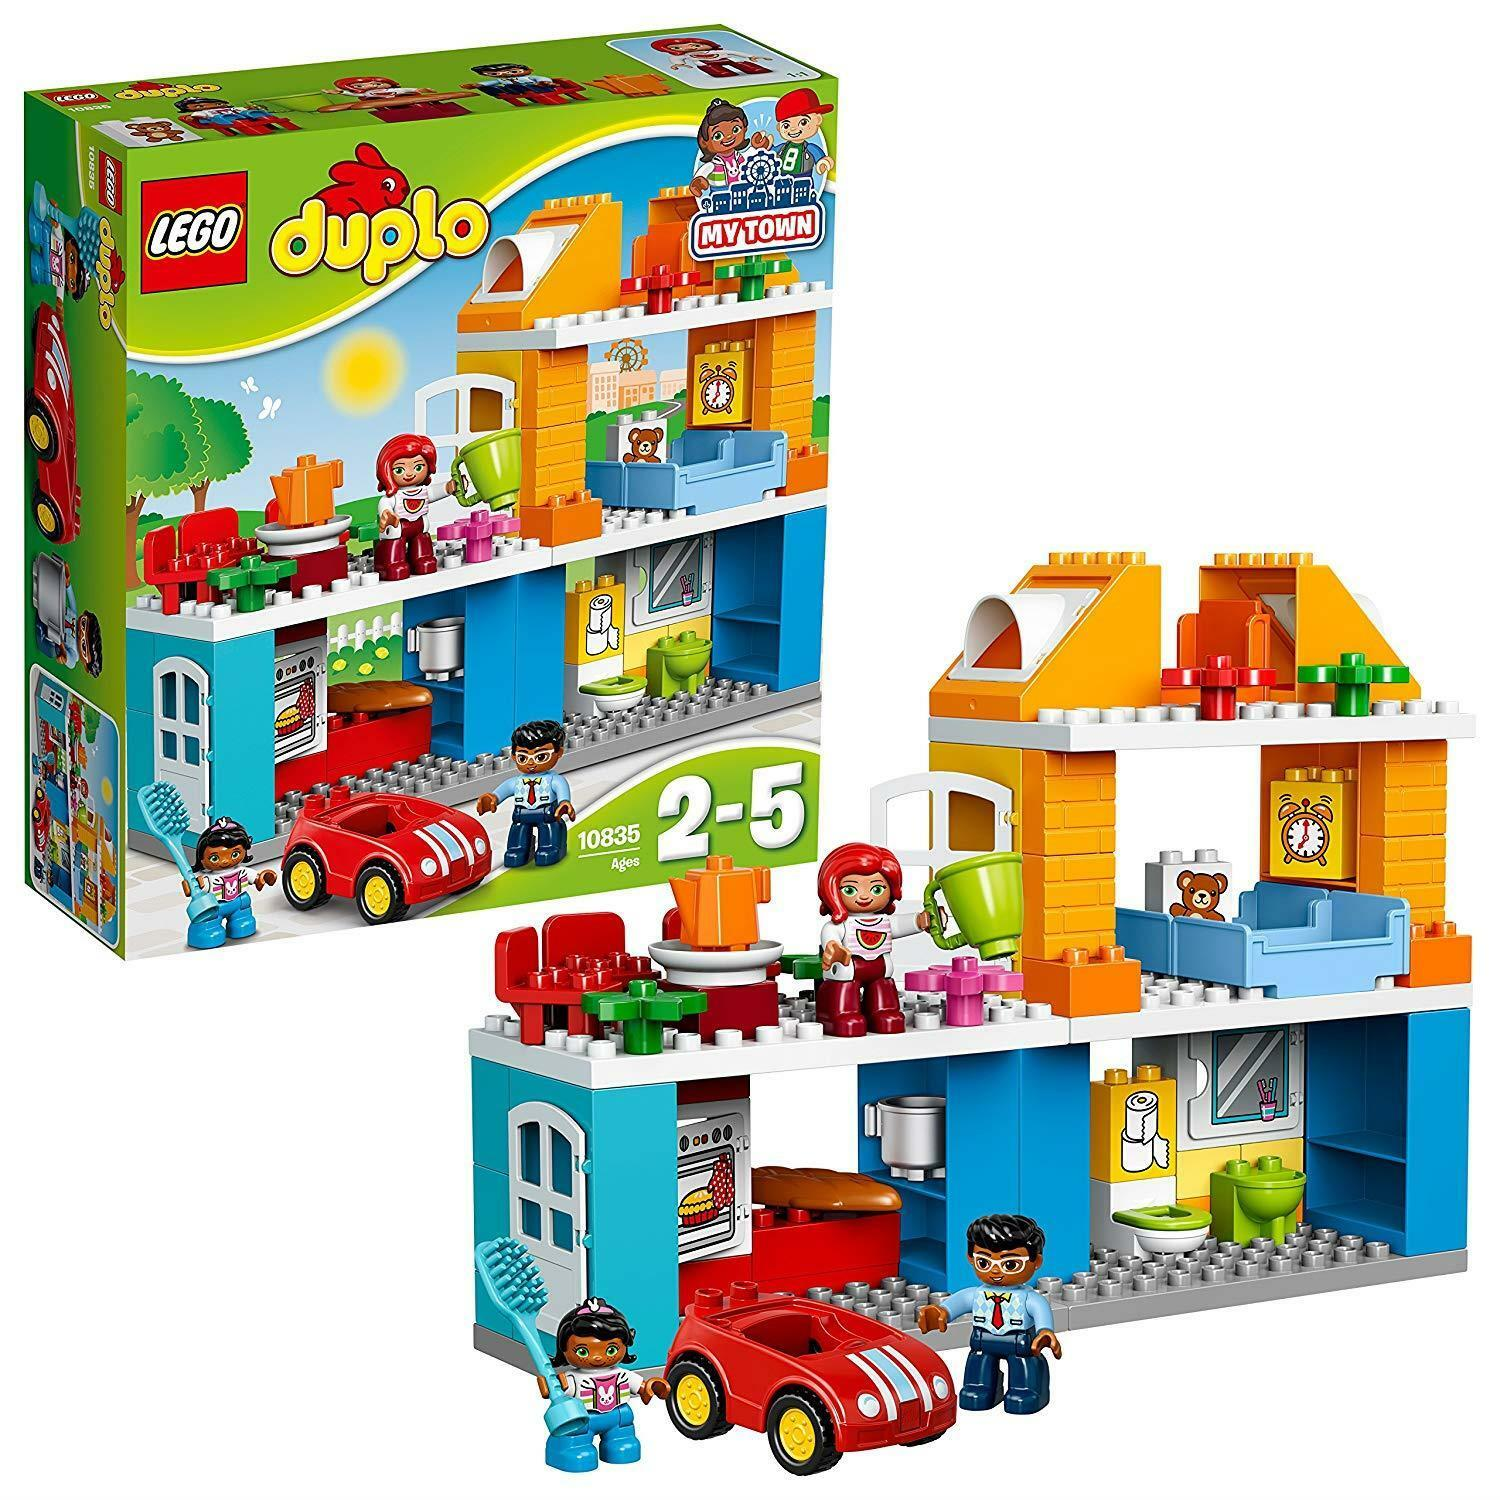 LEGO 10835 DUPLO DUPLO DUPLO Town Family House, My Town Building Set f30a9c